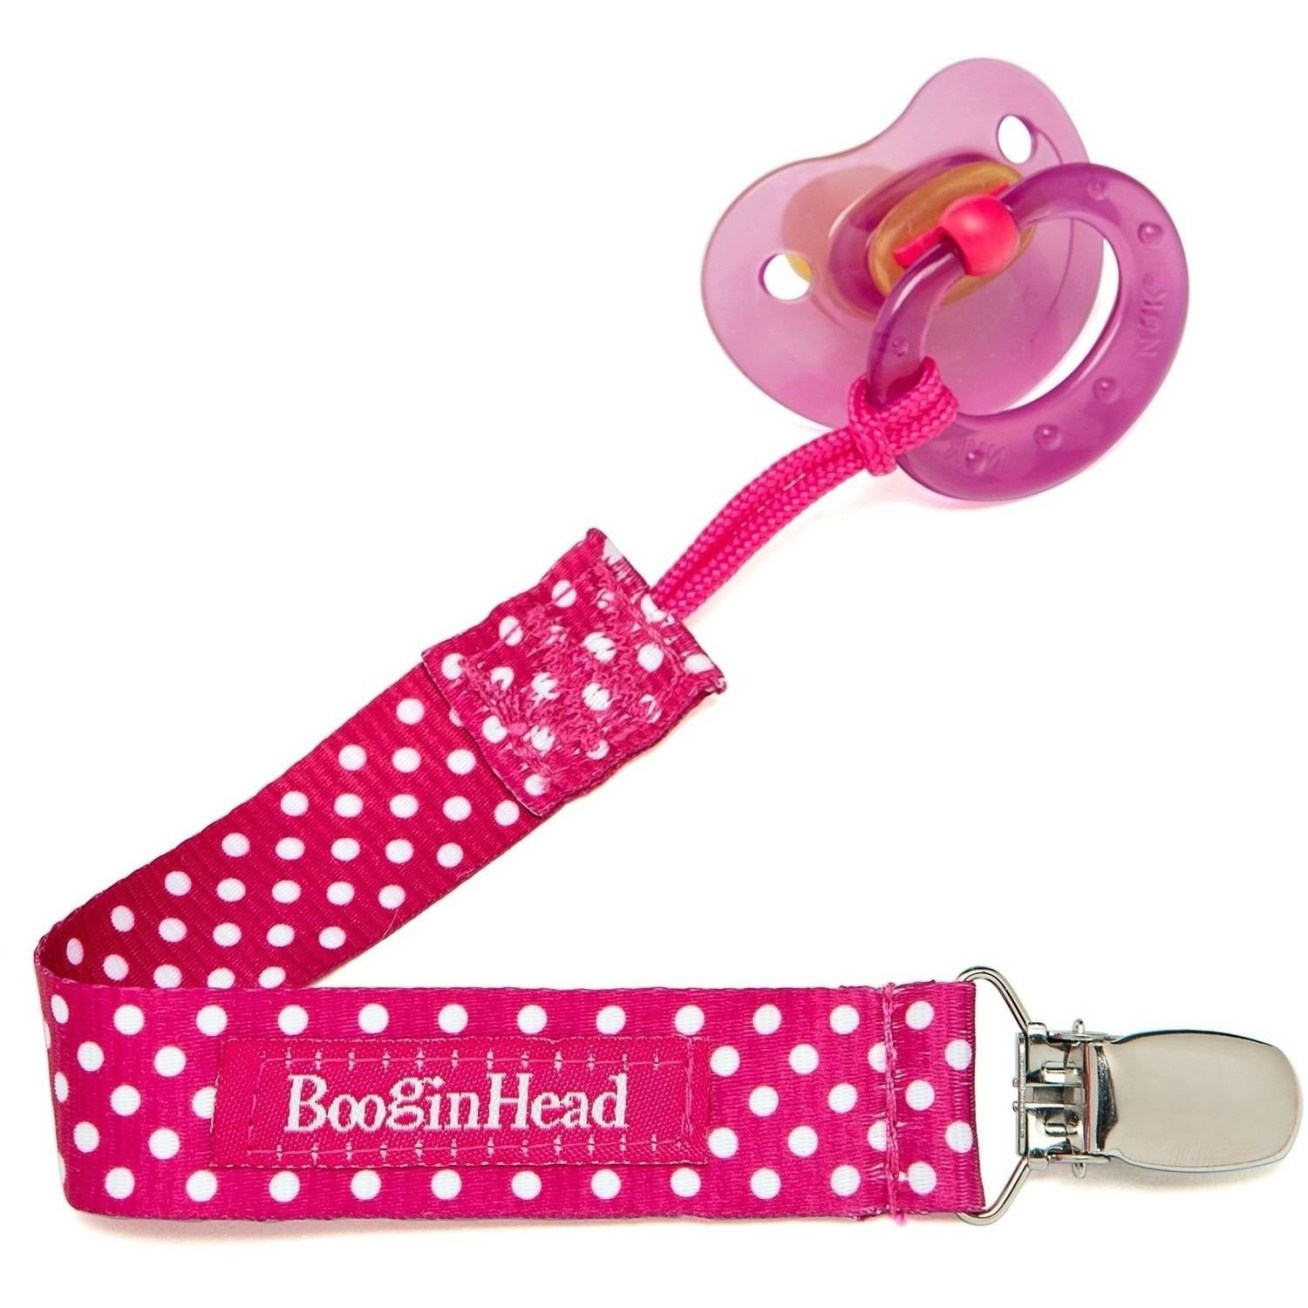 """Promising review: """"I really like this clip, the cord part is actually a strong rope cord, works great. We had a Velcro attachment to the pacifier on our previous clip and my daughter kept yanking the pacifier off and it would fall out of her crib. I like this because she can't take it off anymore... which means I get more sleep!"""" —robbibirdGet it from Walmart for .96+ (six colors/patterns)."""